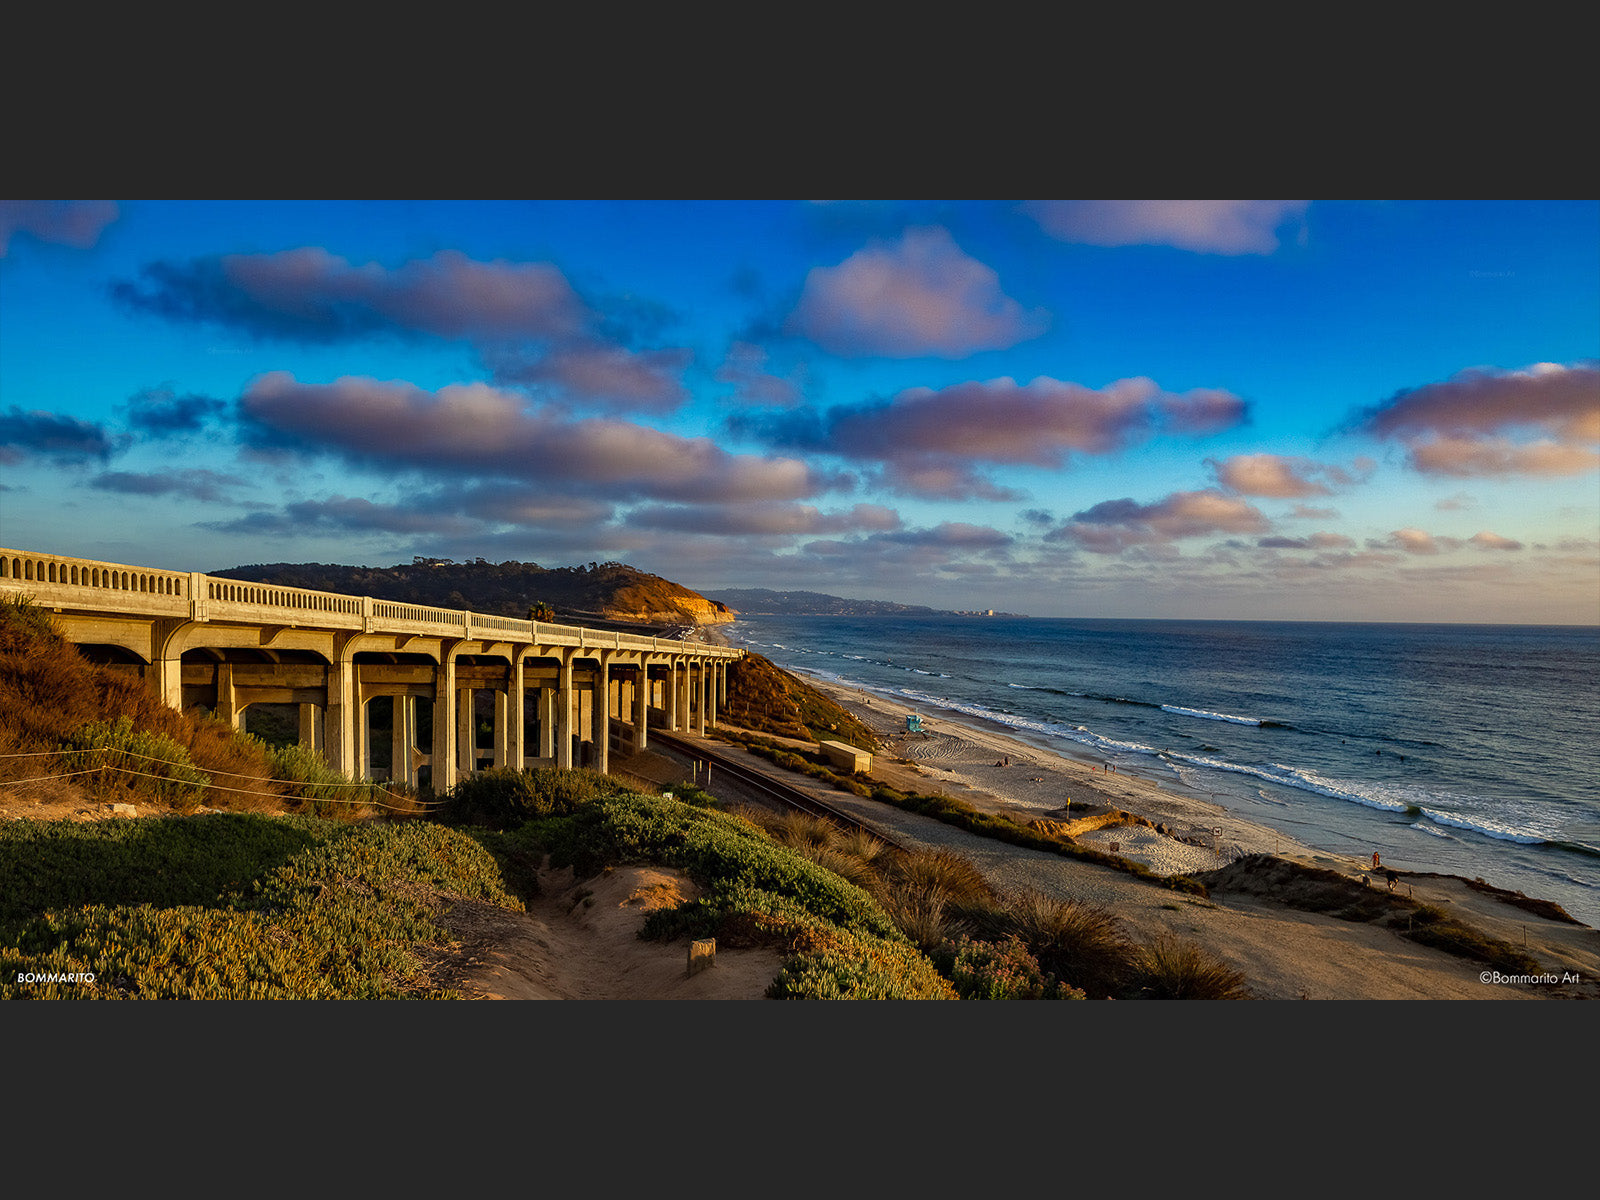 Del Mar Bridge